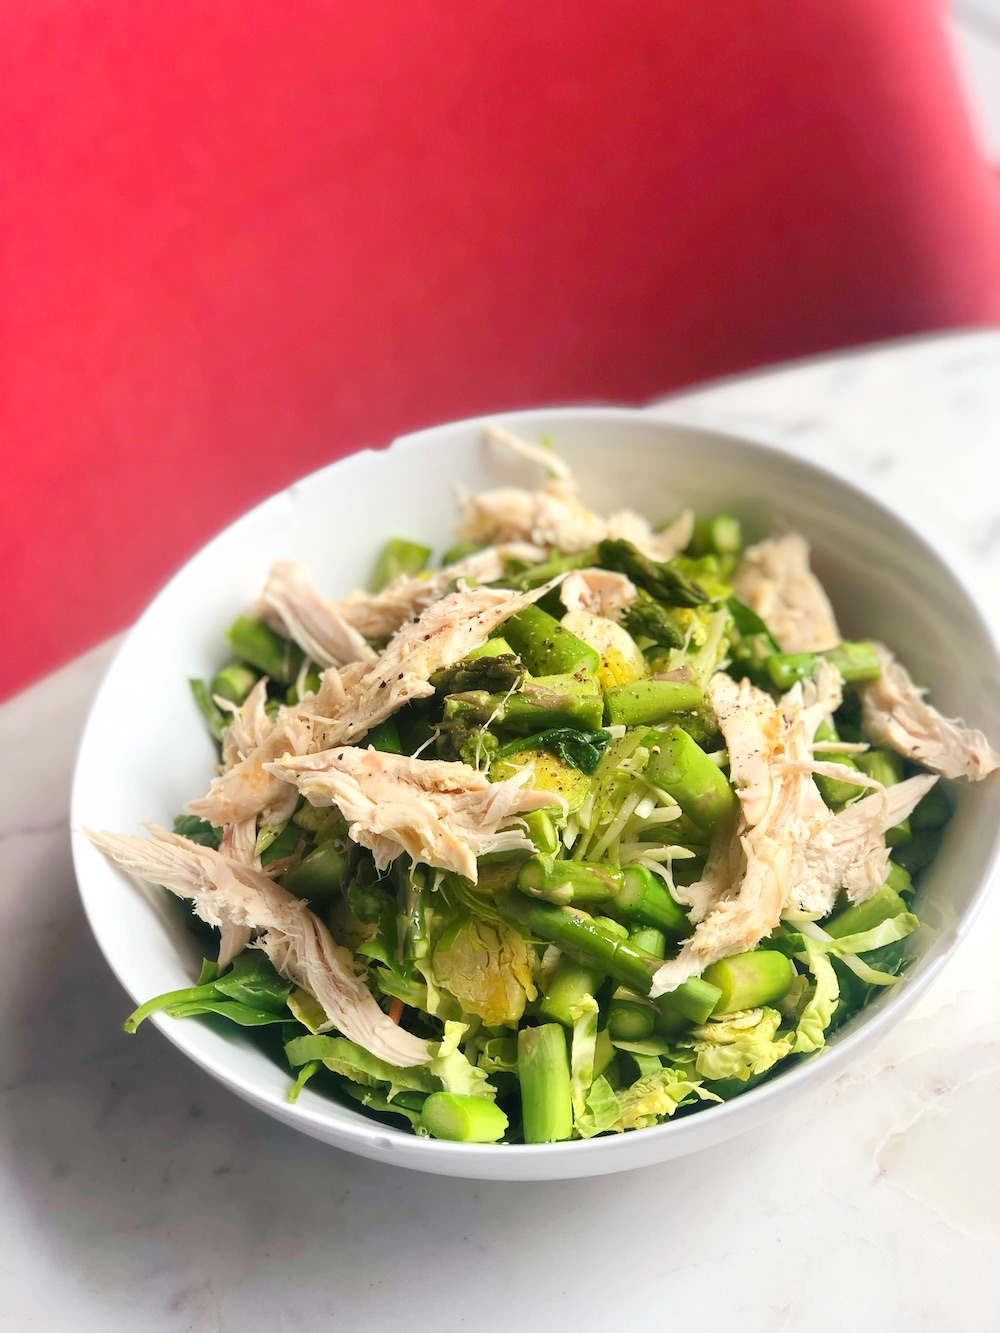 Simple Spring Asparagus and Chicken Salad